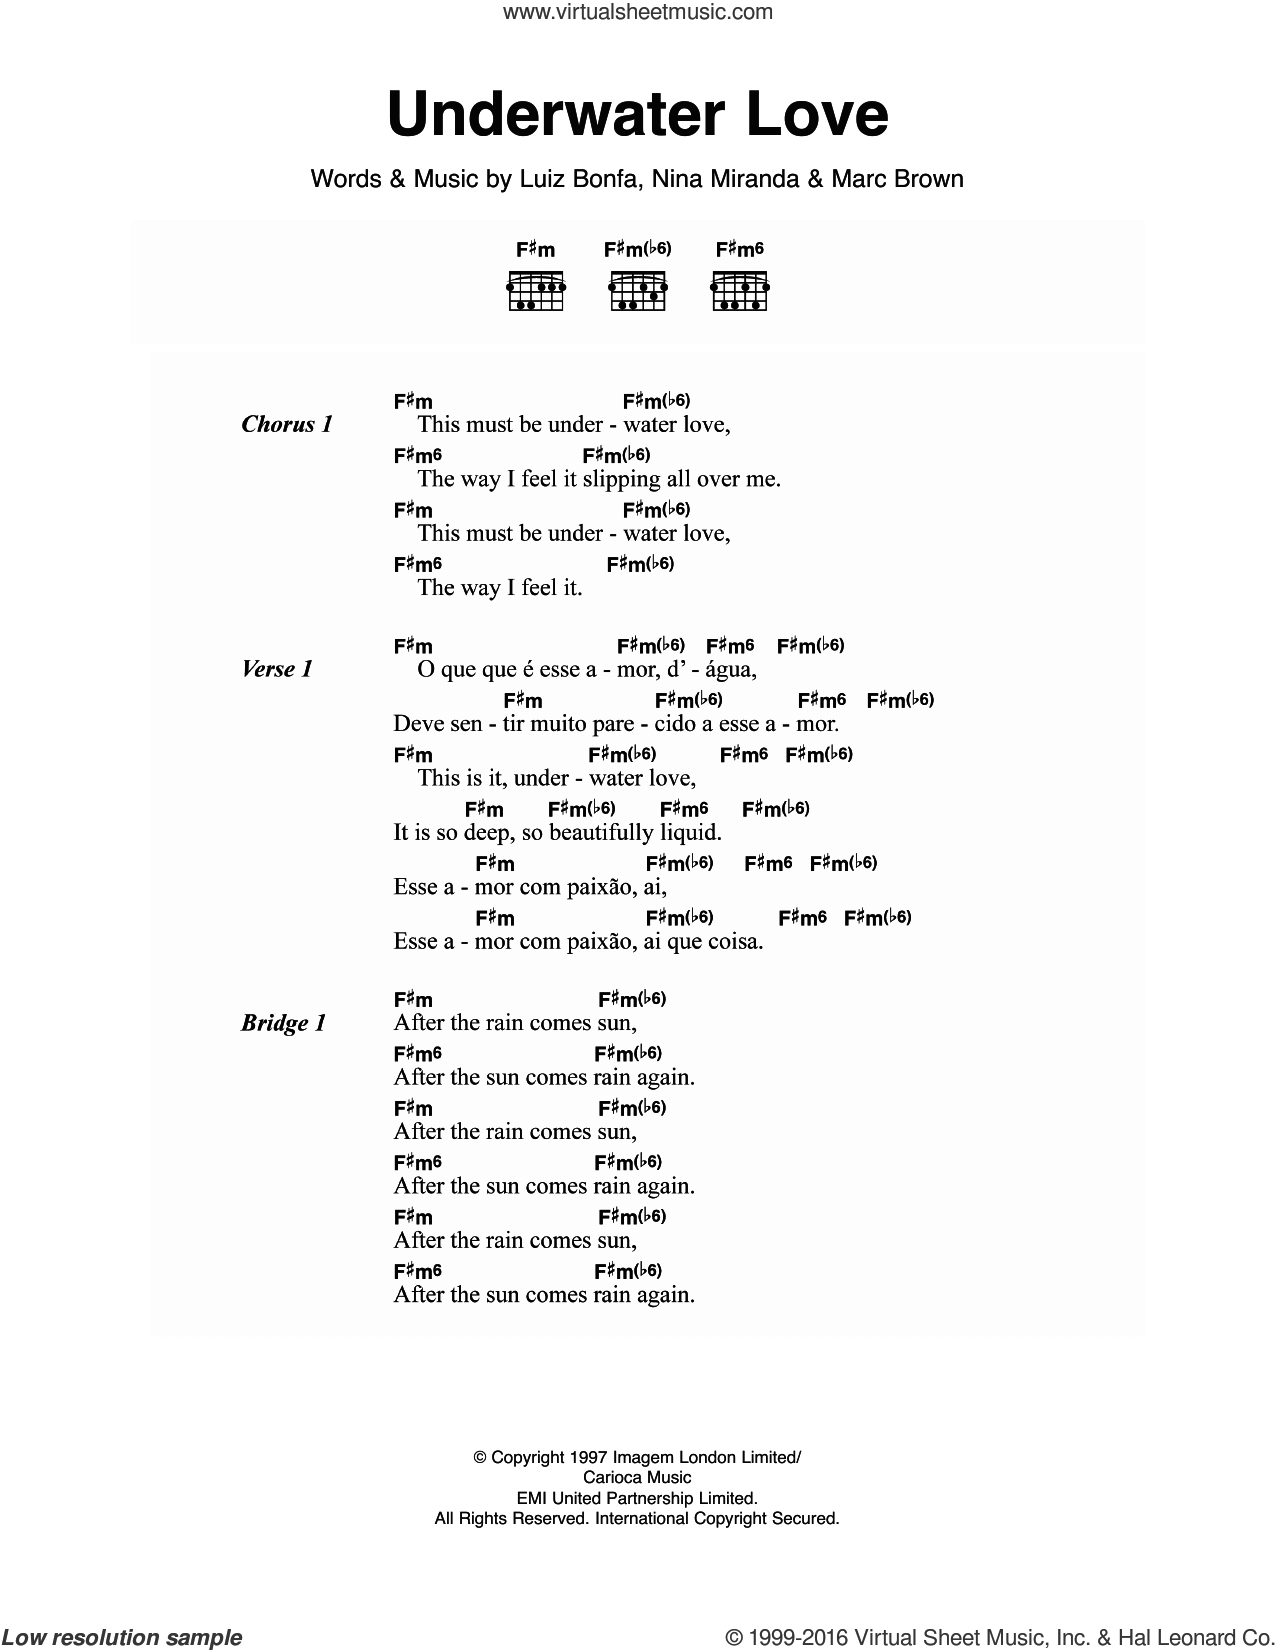 Underwater Love sheet music for guitar (chords) by Nina Miranda and Luiz Bonfa. Score Image Preview.